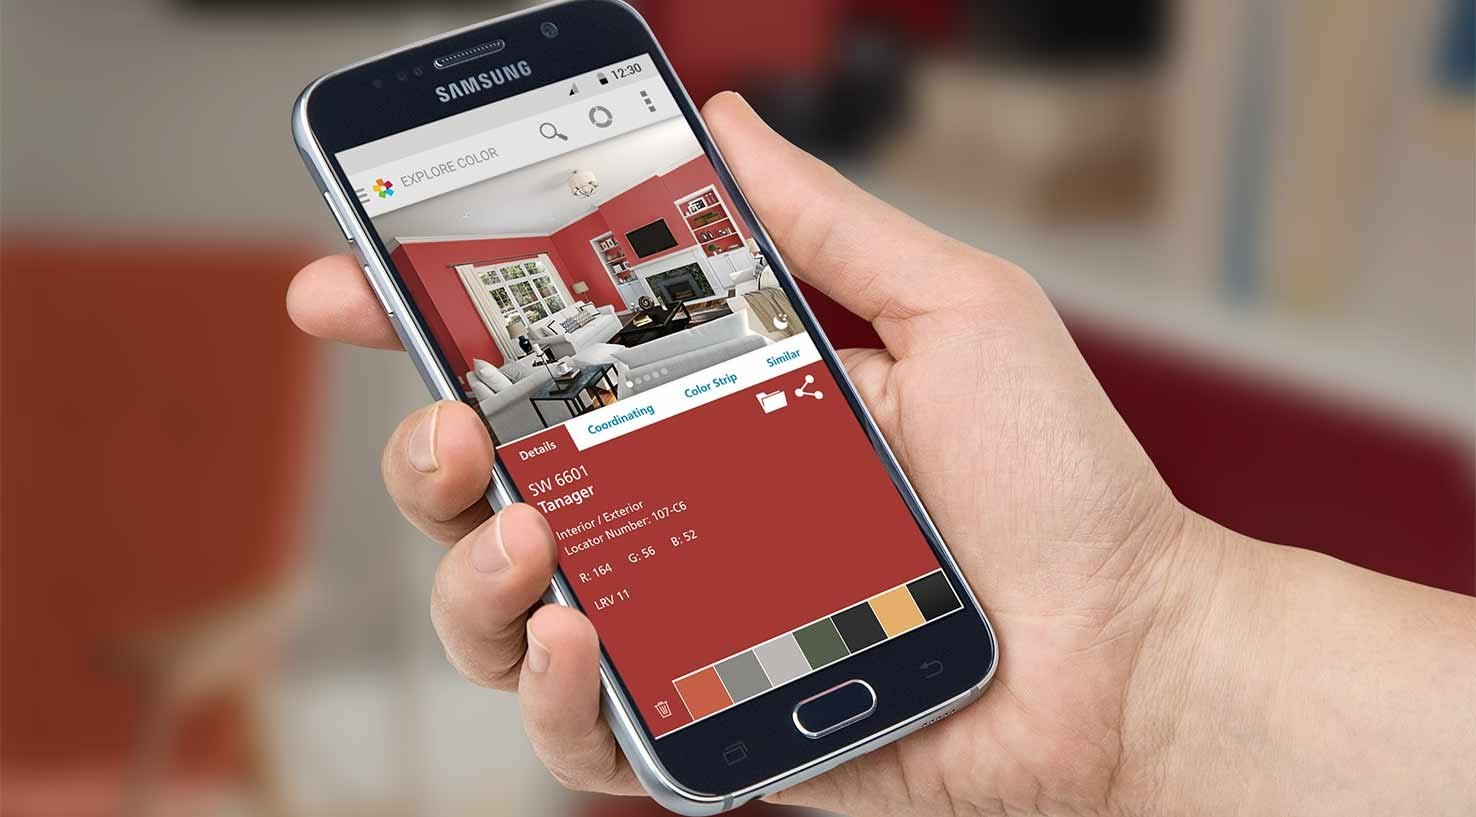 How to Simulate House Painting - Check Out This Free App